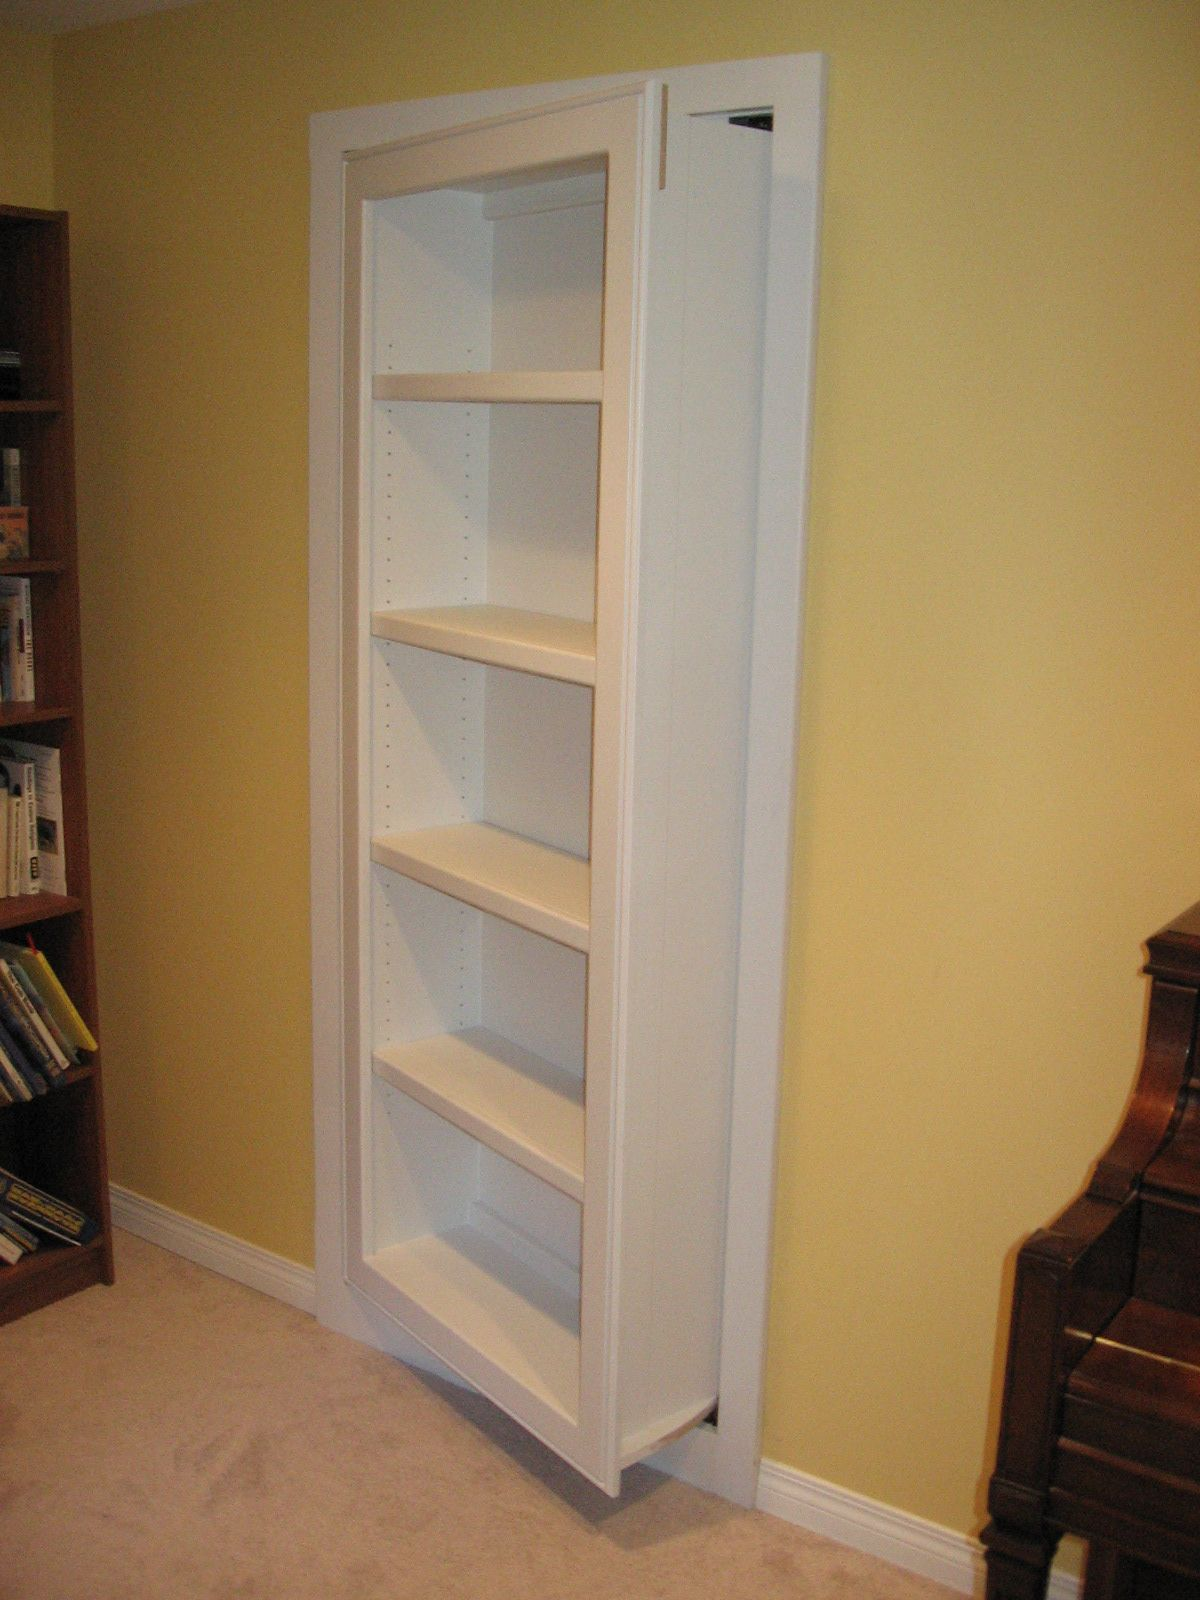 bookcase regarding closet secret door mesmerizing doors residence hidden your office inside inspiration to hardware applied